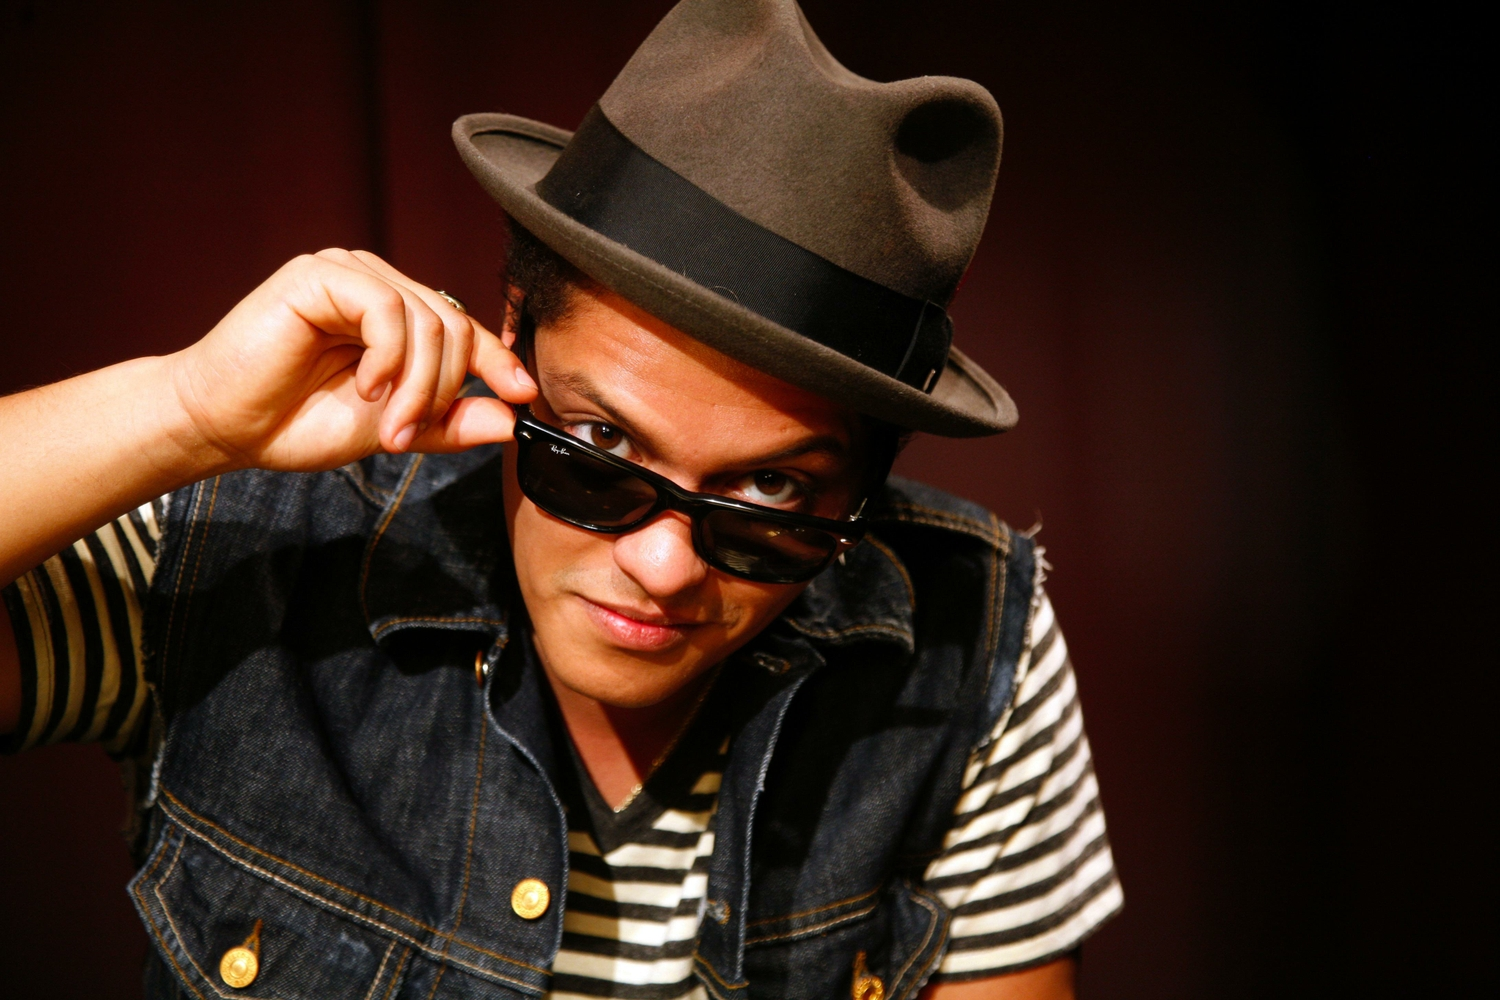 bruno mars on planet mars - photo #25